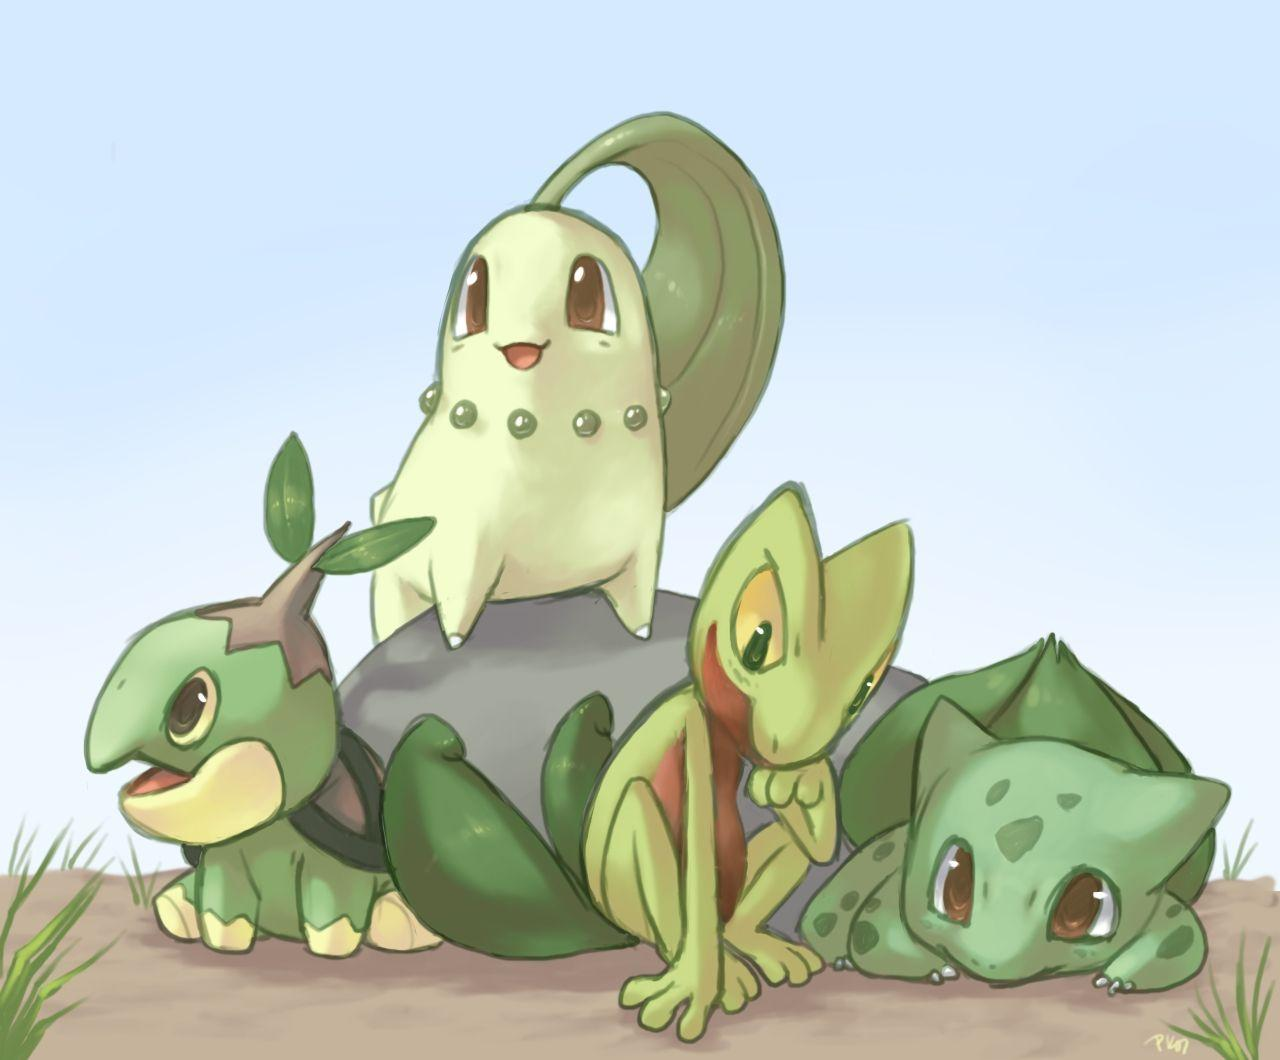 pokemon bulbasaur chikorita 1280x1060 wallpaper High Quality ...